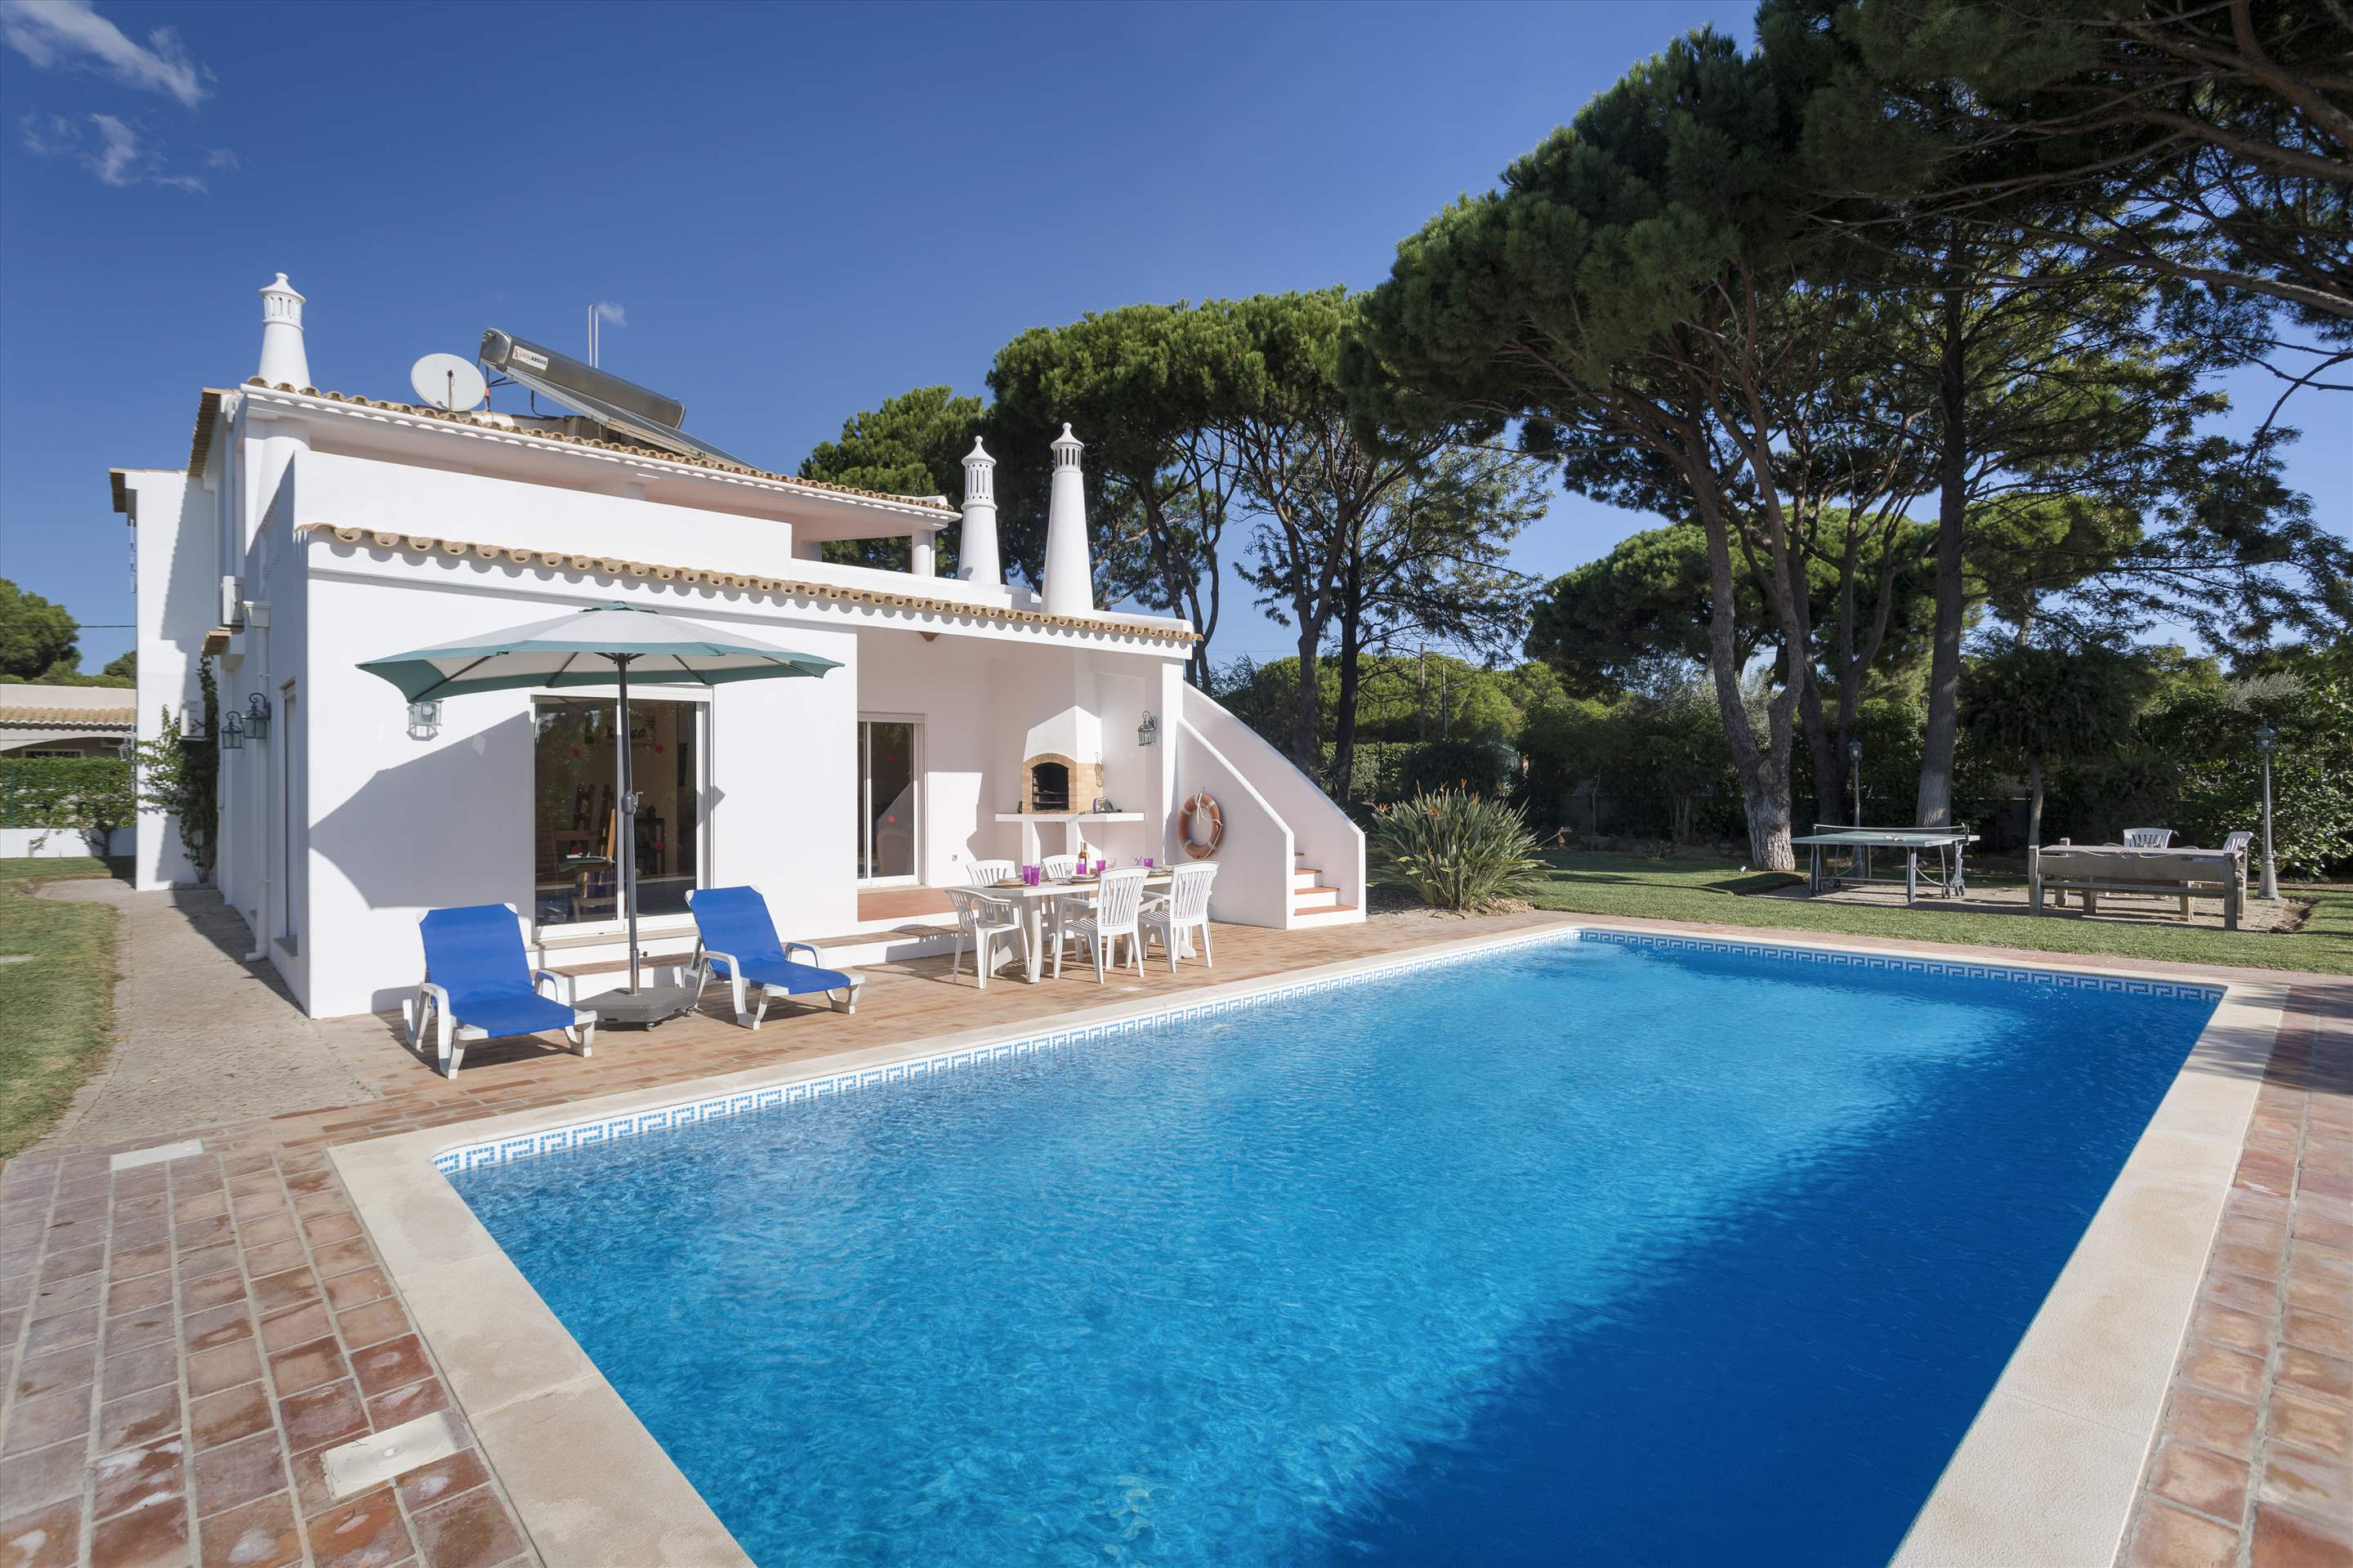 Casa Nova, 3 bedroom villa in Vilamoura Area, Algarve Photo #1